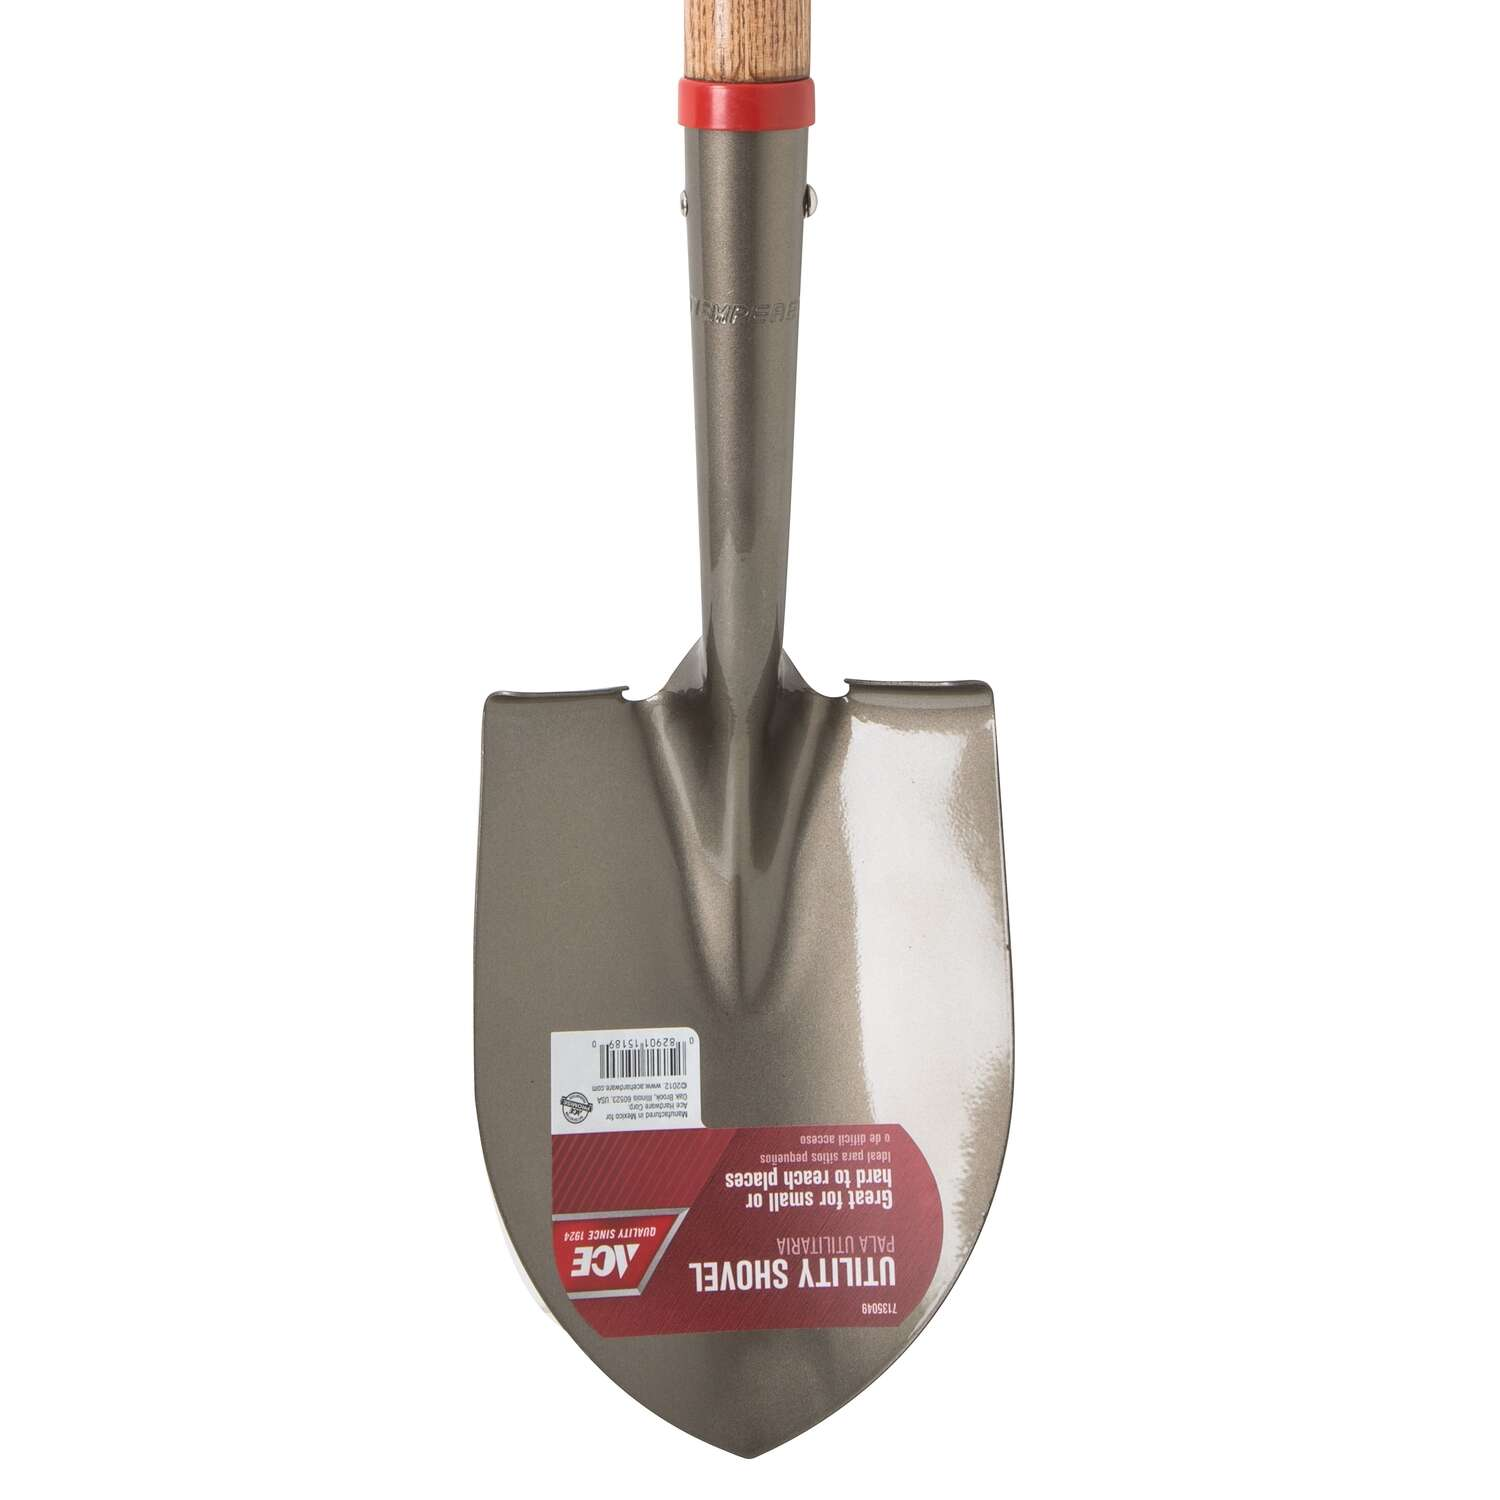 Ace  Little Pal  Steel  8-1/4 in. W x 27 in. L Mini Round Point  Shovel  Wood